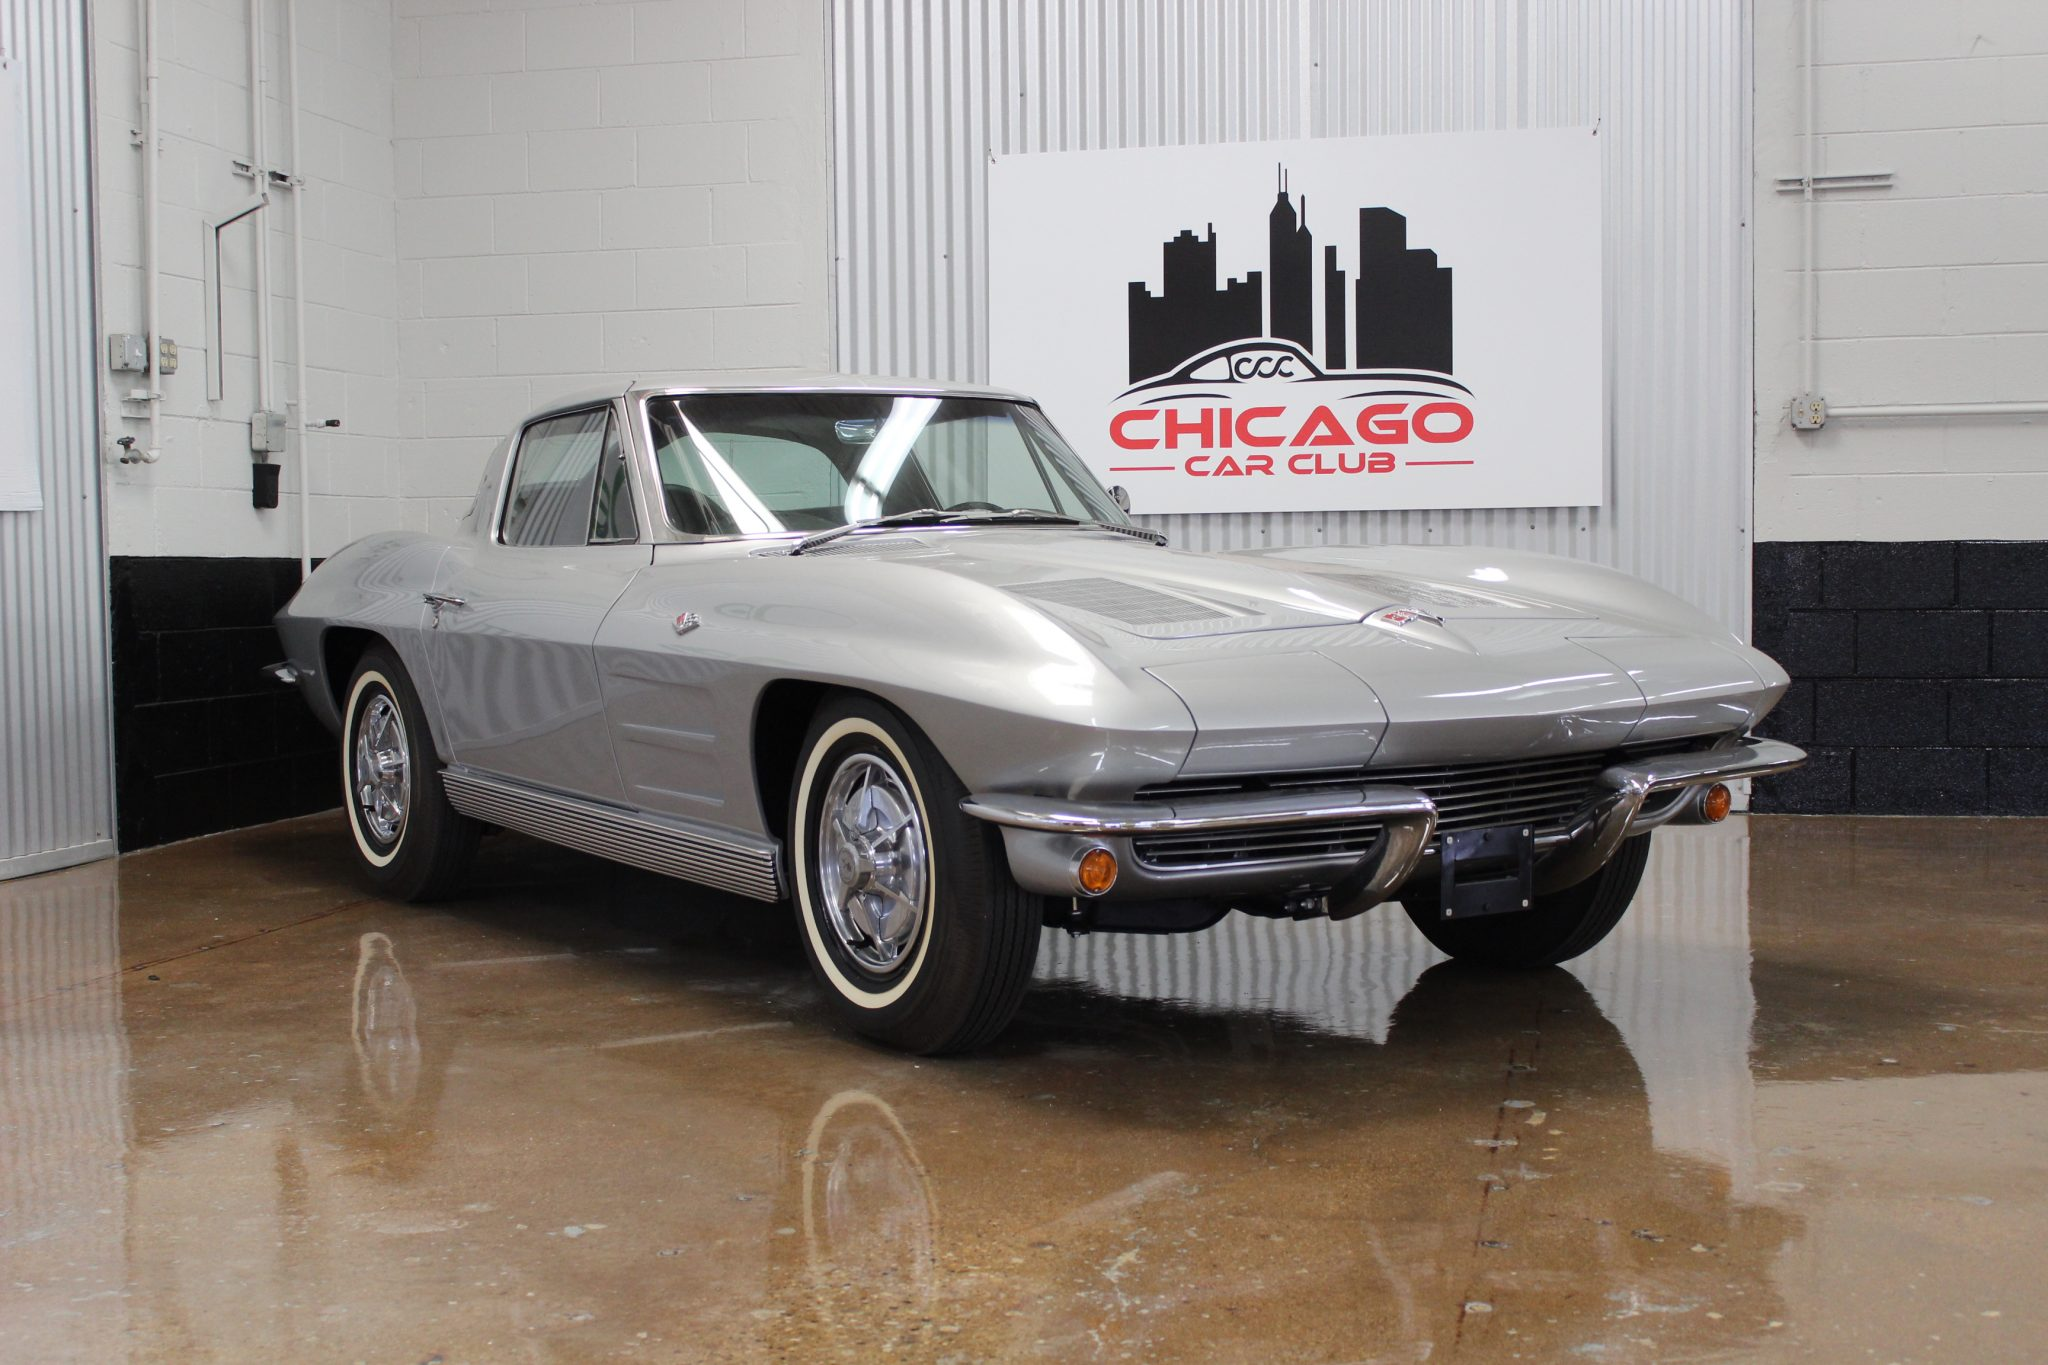 Ensuring Long Term Value - 5 Things To Look For | Chicago Car Club ...